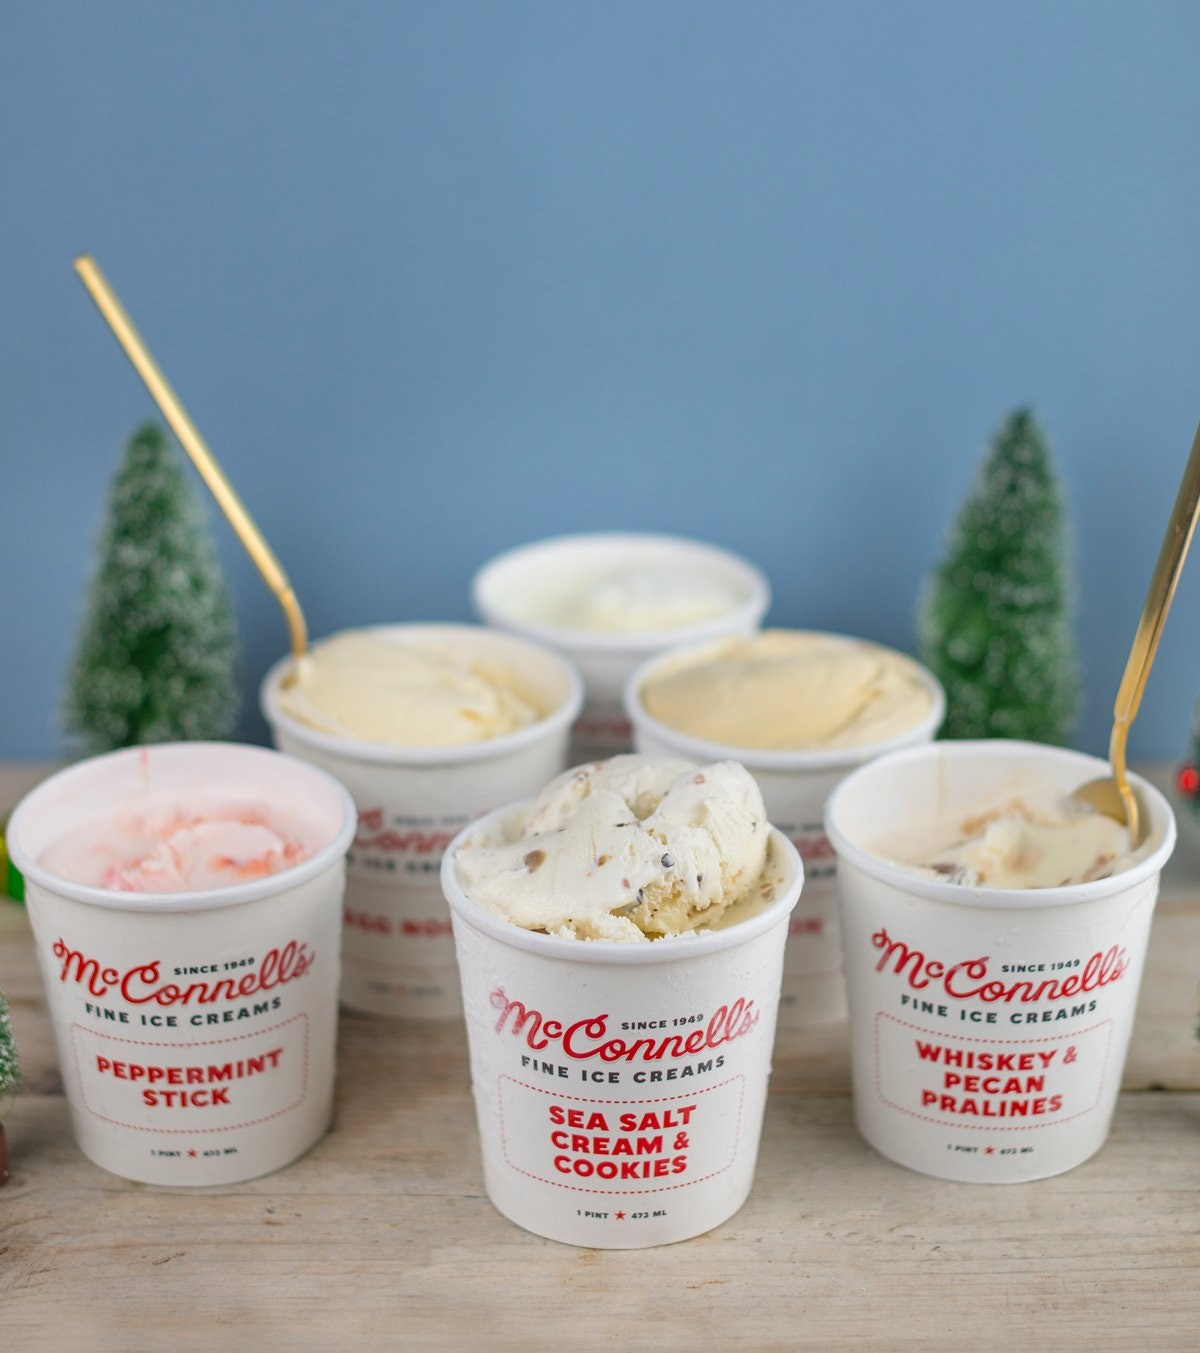 These Holiday-Themed Boozy Ice Creams Are The Best Early Christmas Gift